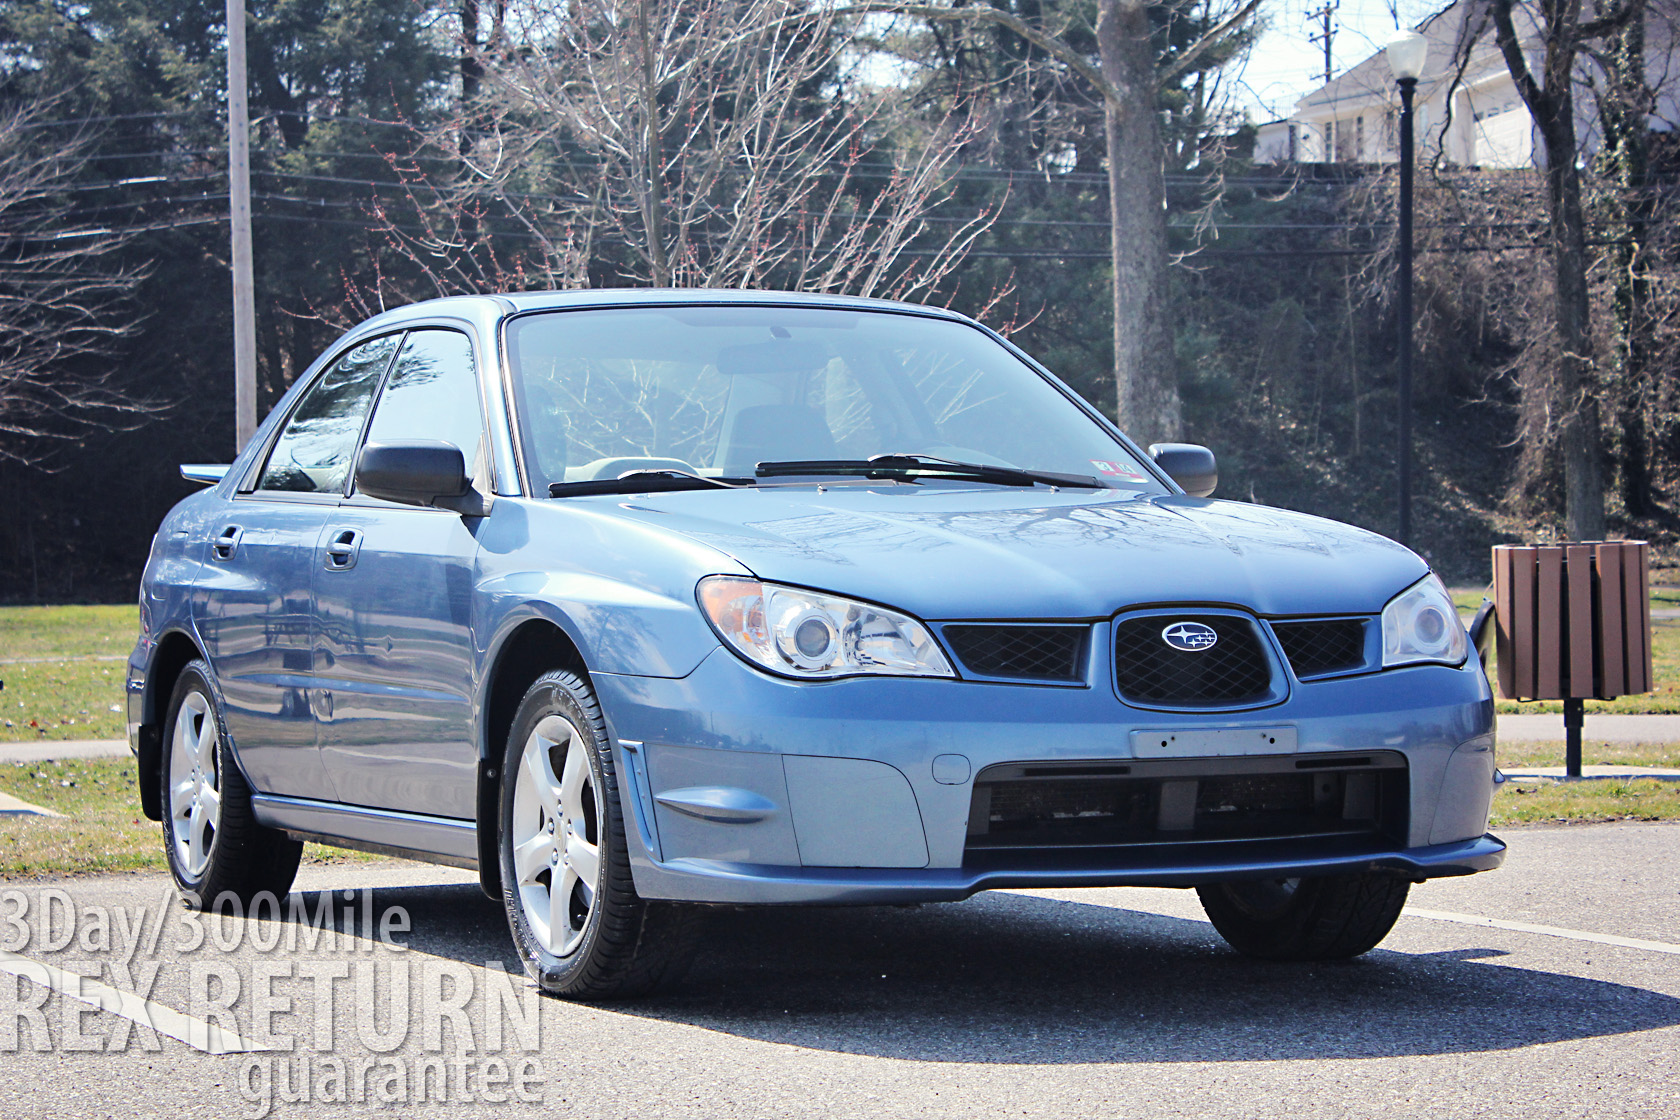 2007 subaru impreza 67 563 miles carwrex subarus. Black Bedroom Furniture Sets. Home Design Ideas